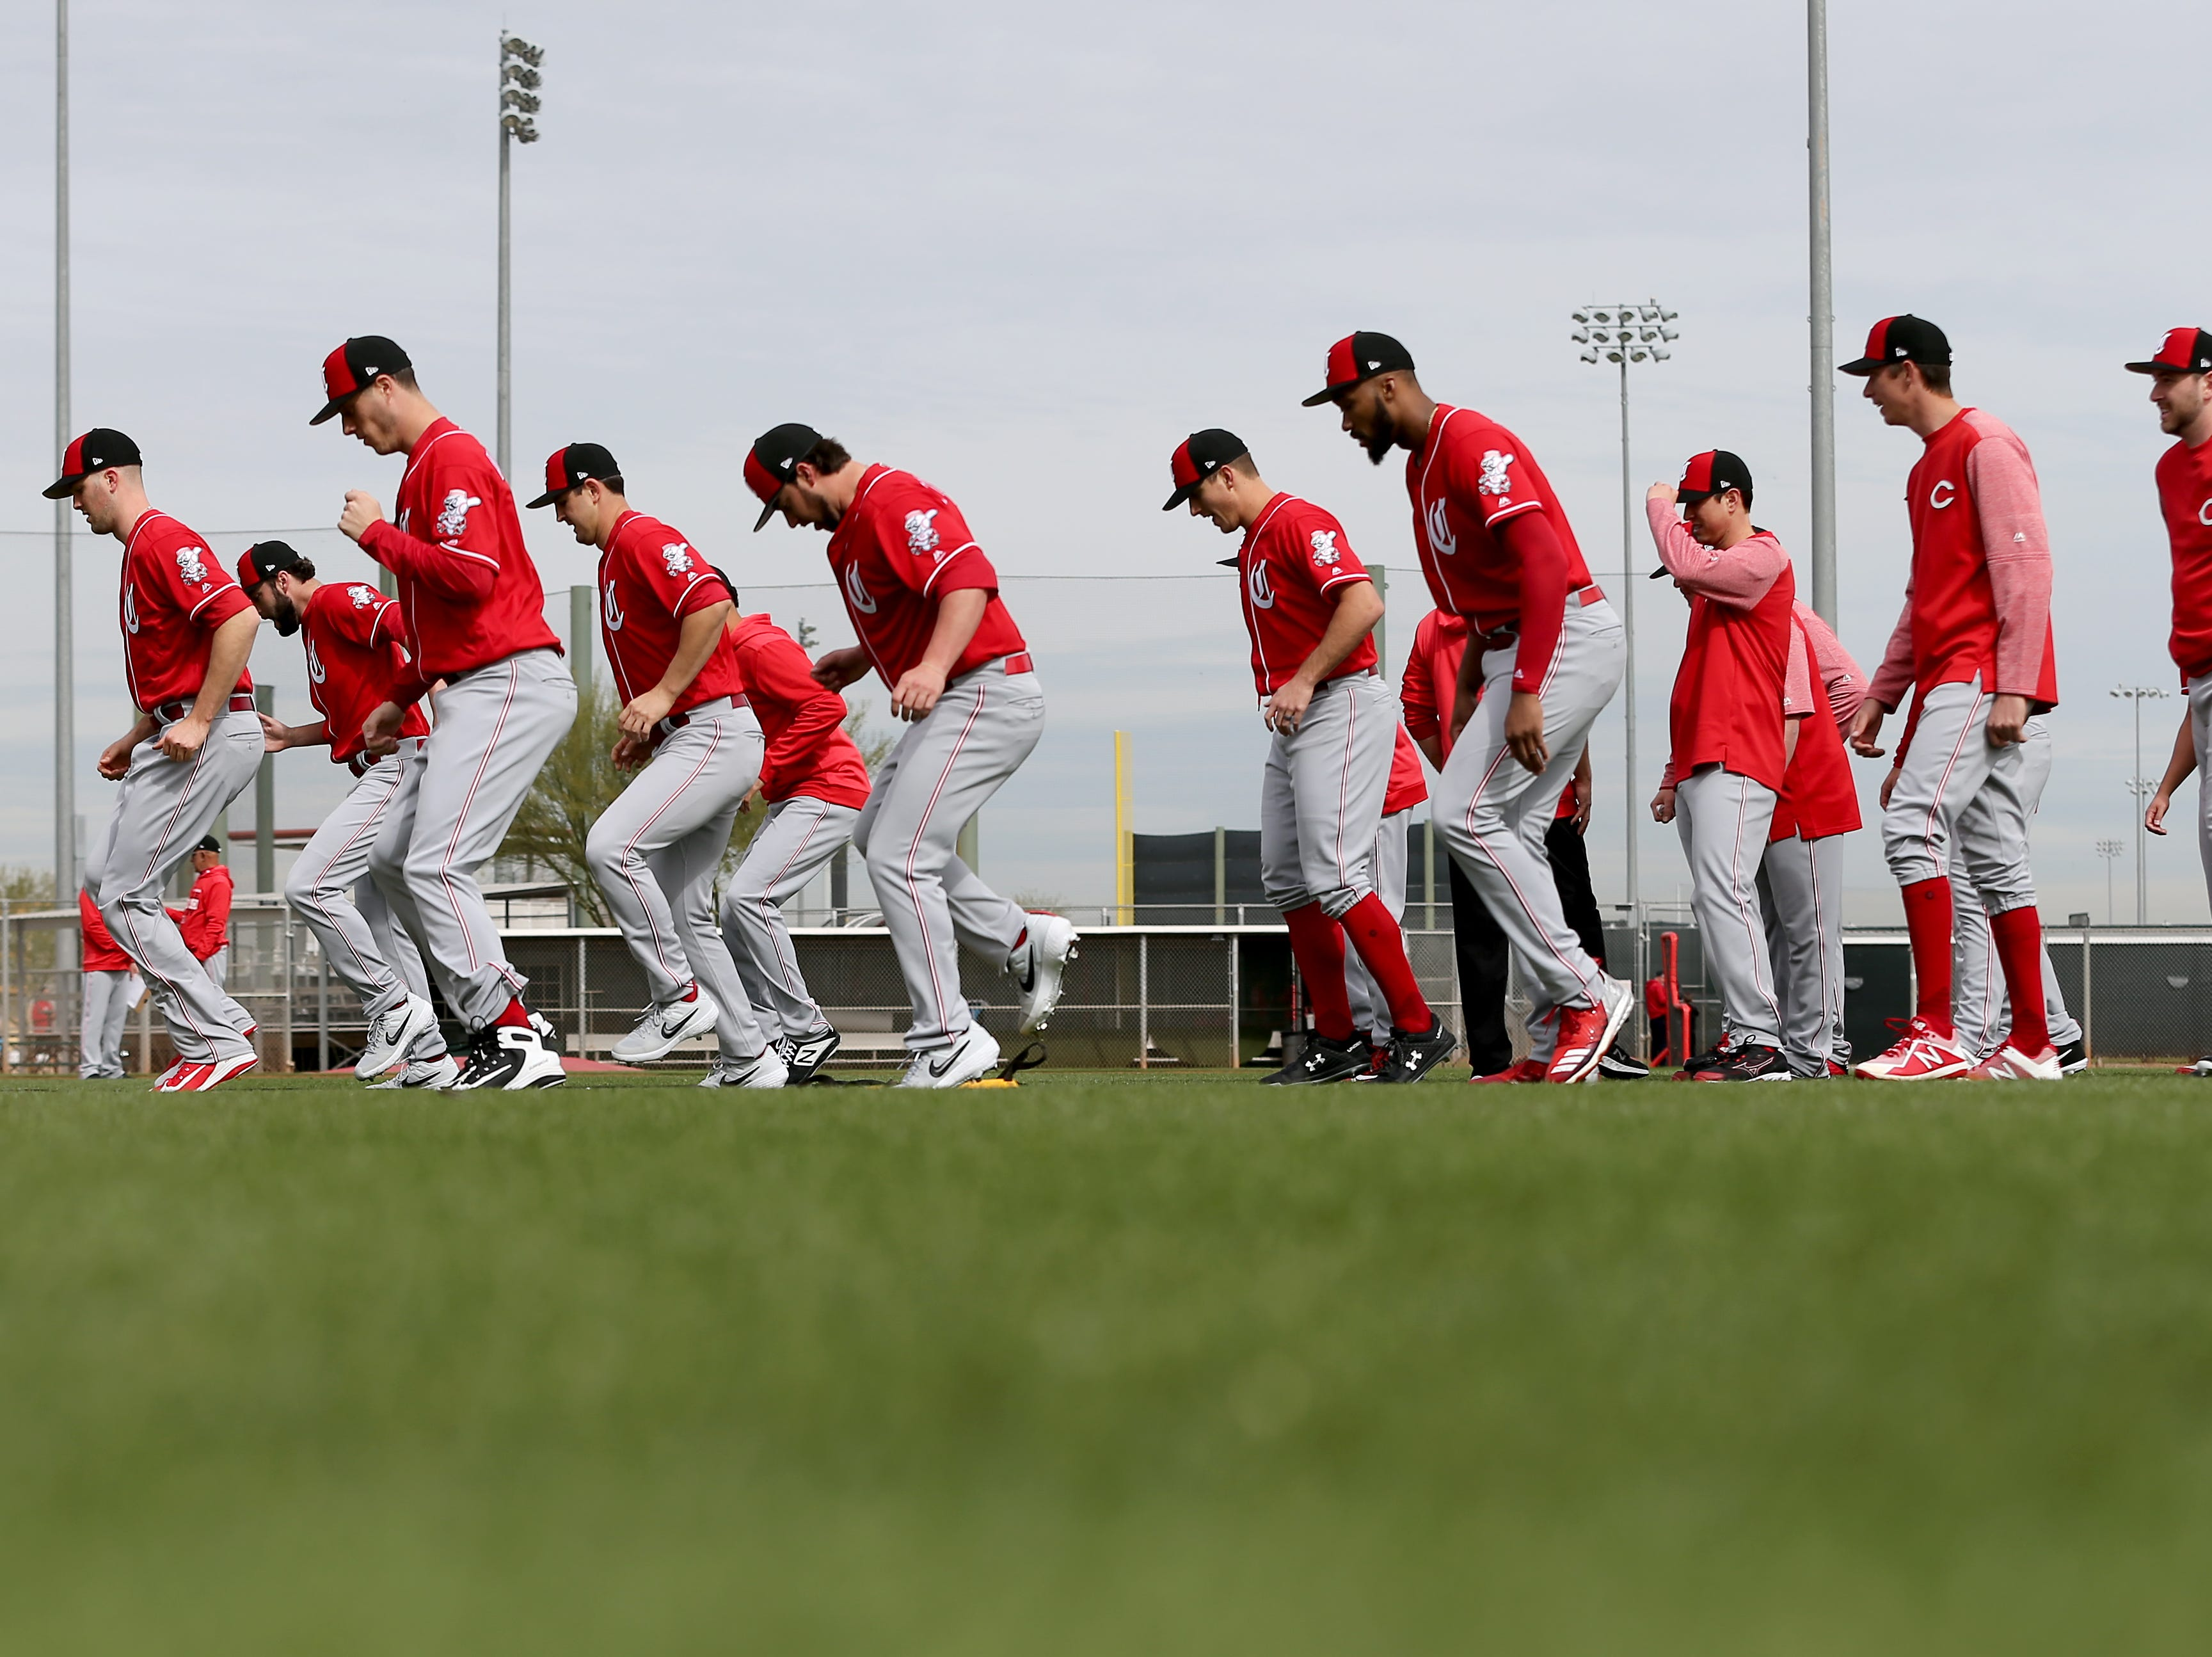 Cincinnati Reds pitchers warm up on the first day of workouts, Wednesday, Feb. 13, 2019, at the Cincinnati Reds spring training facility in Goodyear, Arizona.